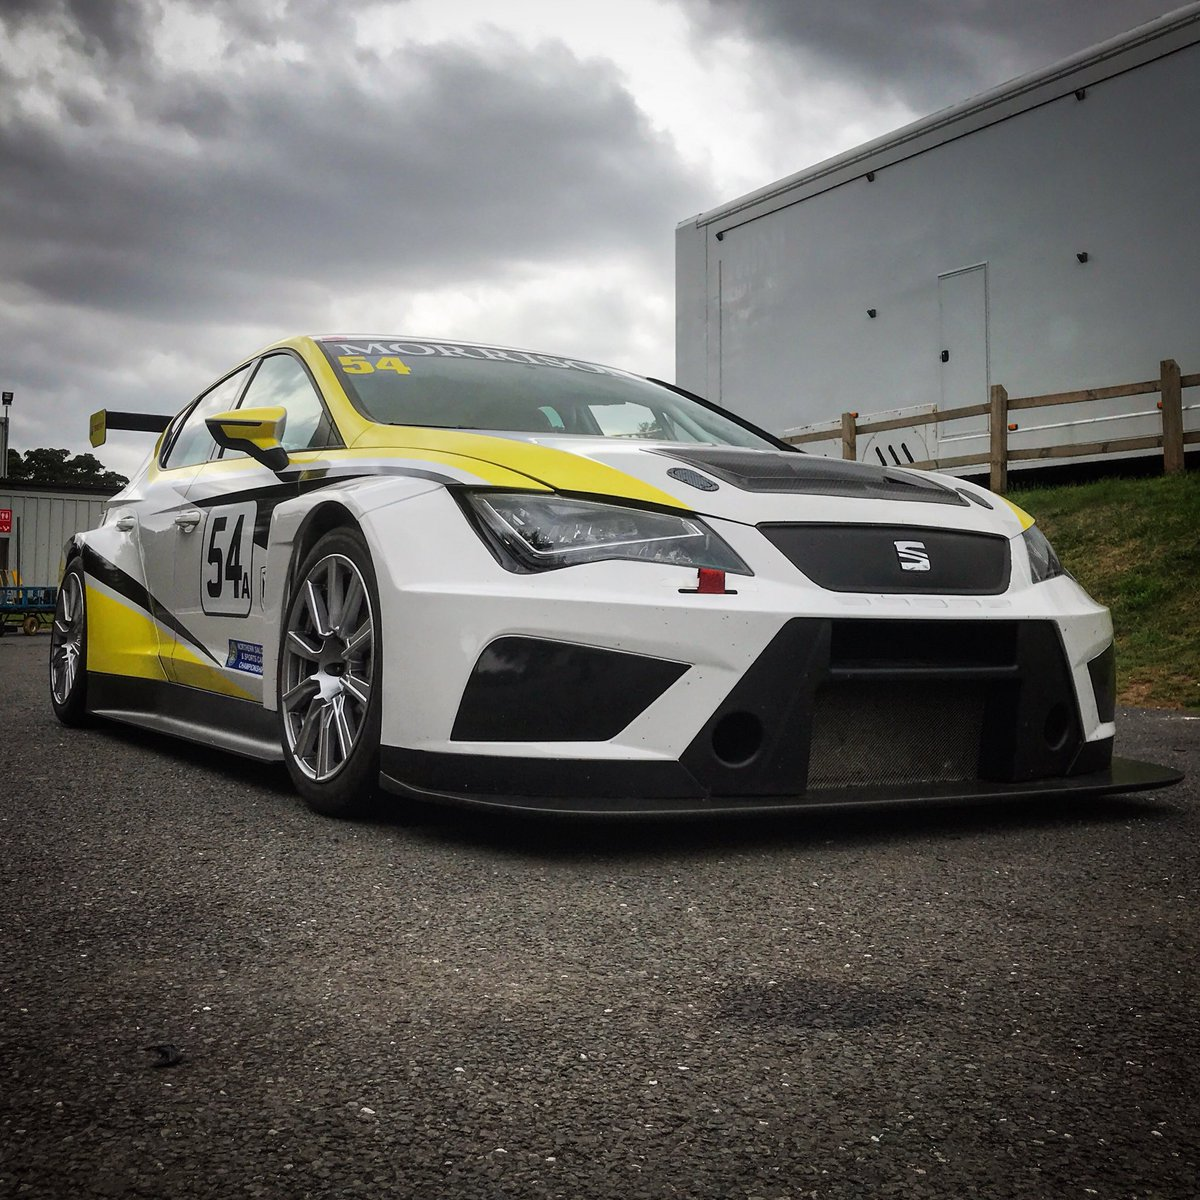 This Seat Leon TCR is just one of the exciting entries in tomorrow's BARC Northern Saloon Car Championship. If you've never seen a factory touring car driven in anger around the 'Mini Nurburgring', you're in for a treat. 🔥🔥🔥 Spectator info 👀 news.cadwellpark.co.uk/cp-superkartsb…